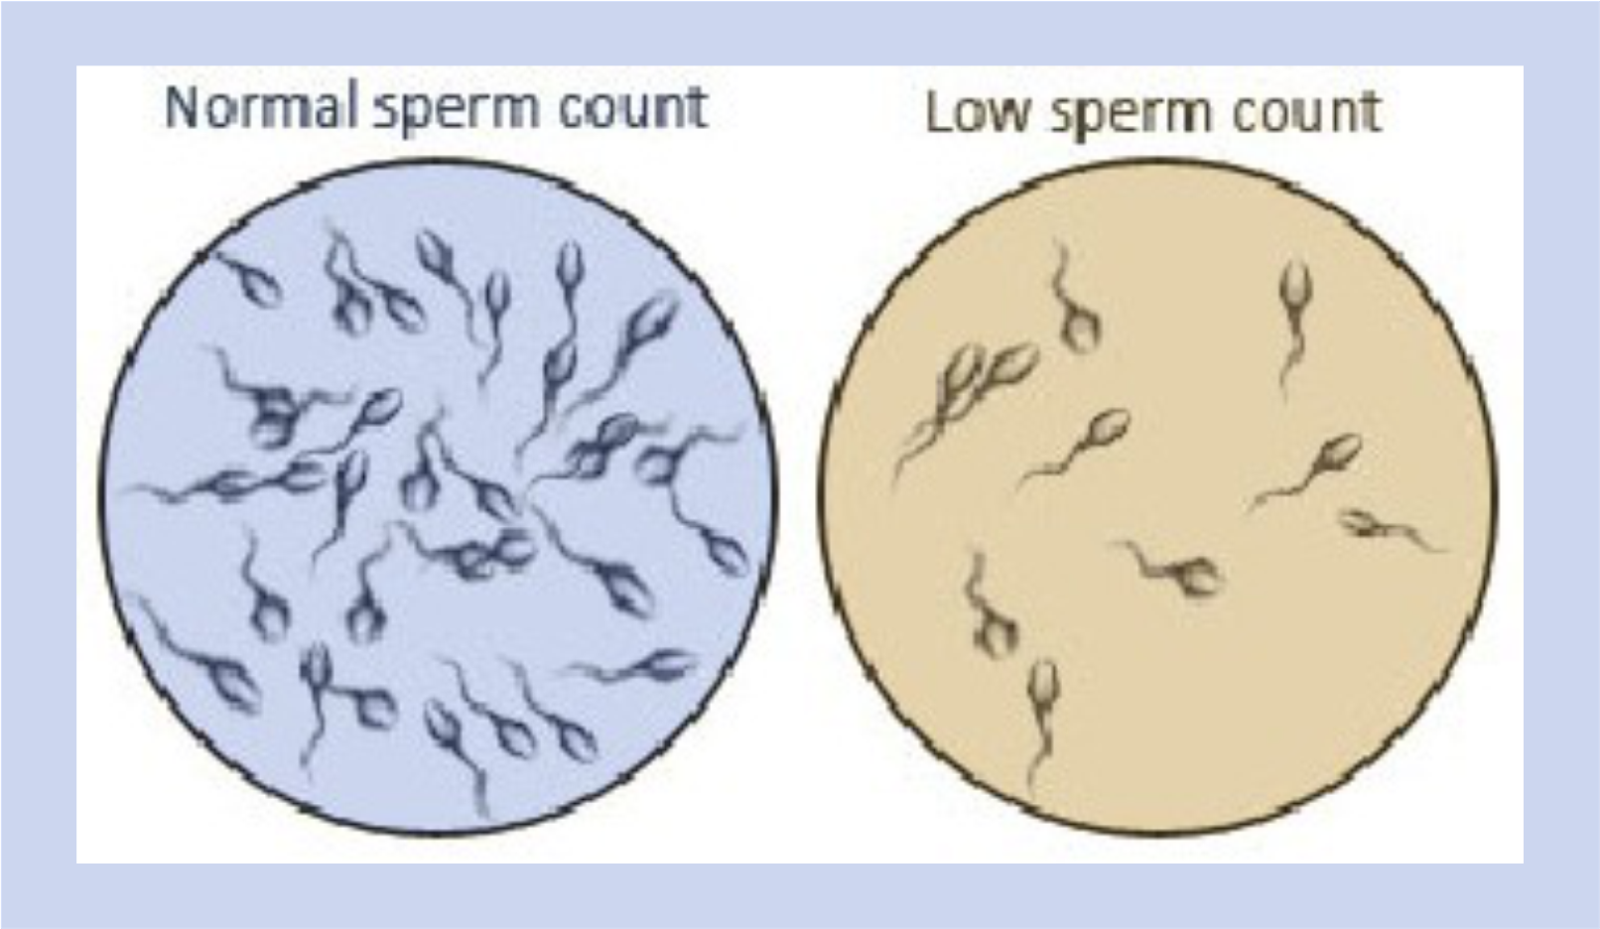 Decrease in sperm